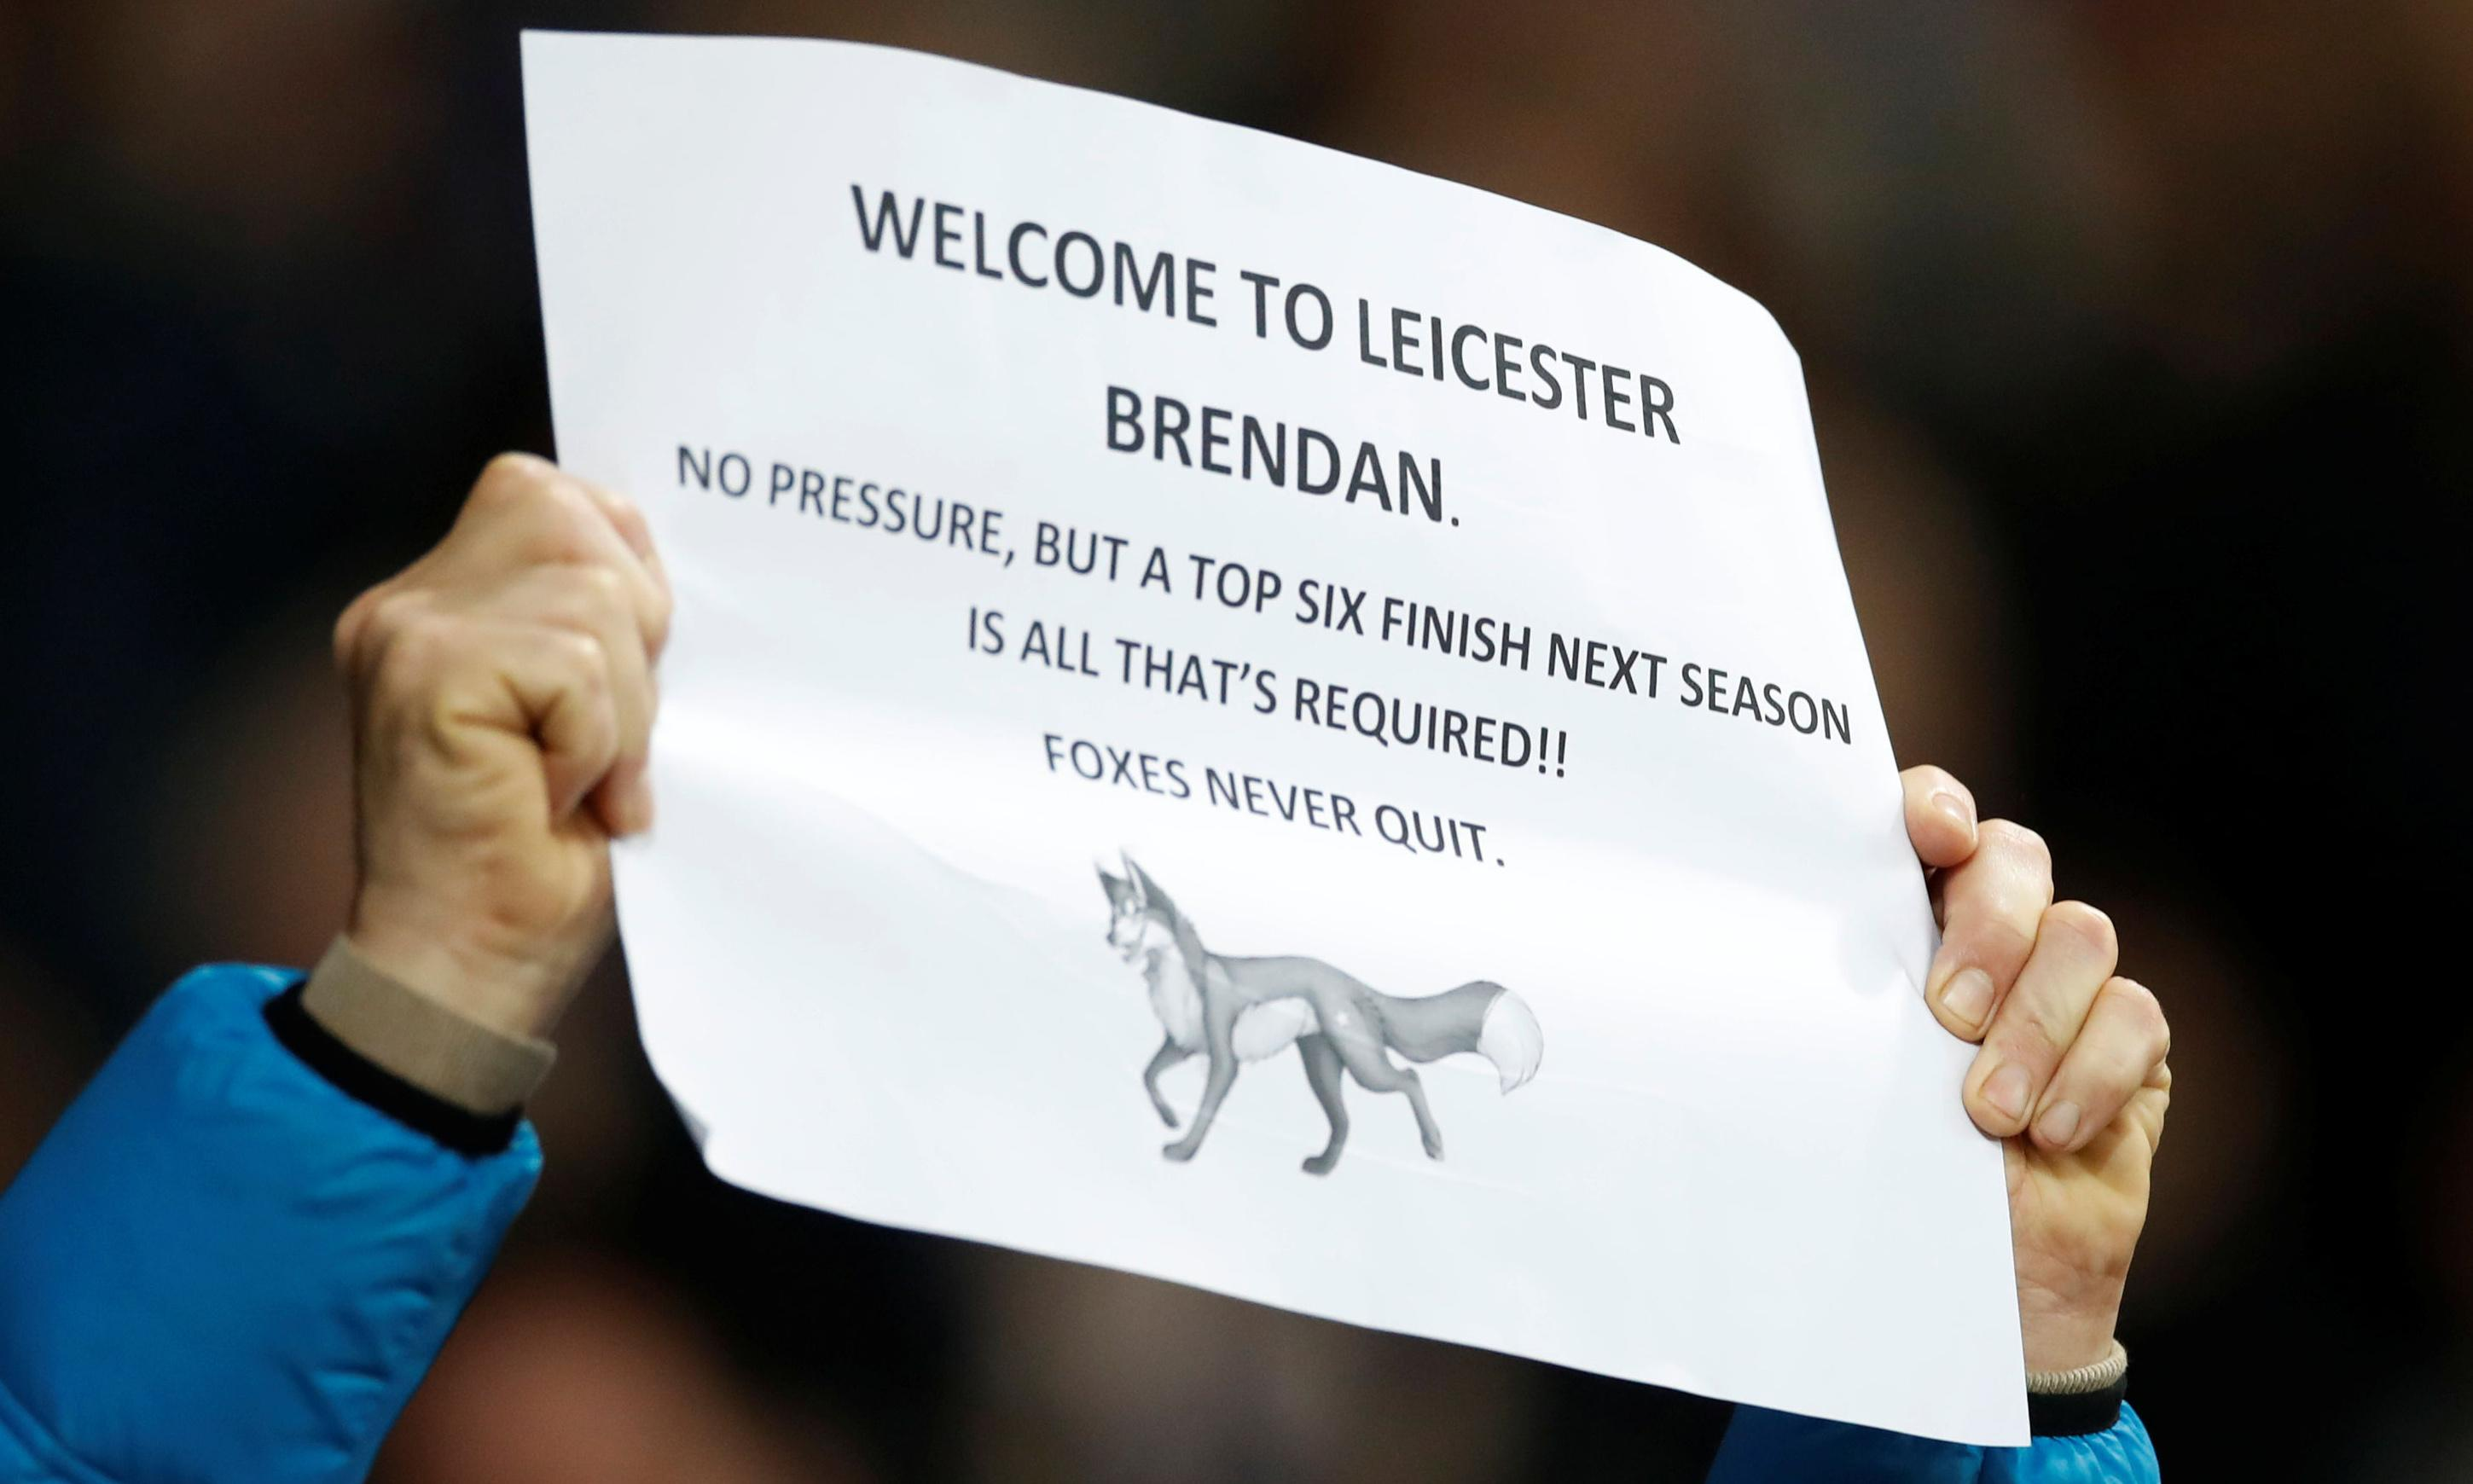 Premier League fans assess the run-in. Part 2: Leicester to Wolves